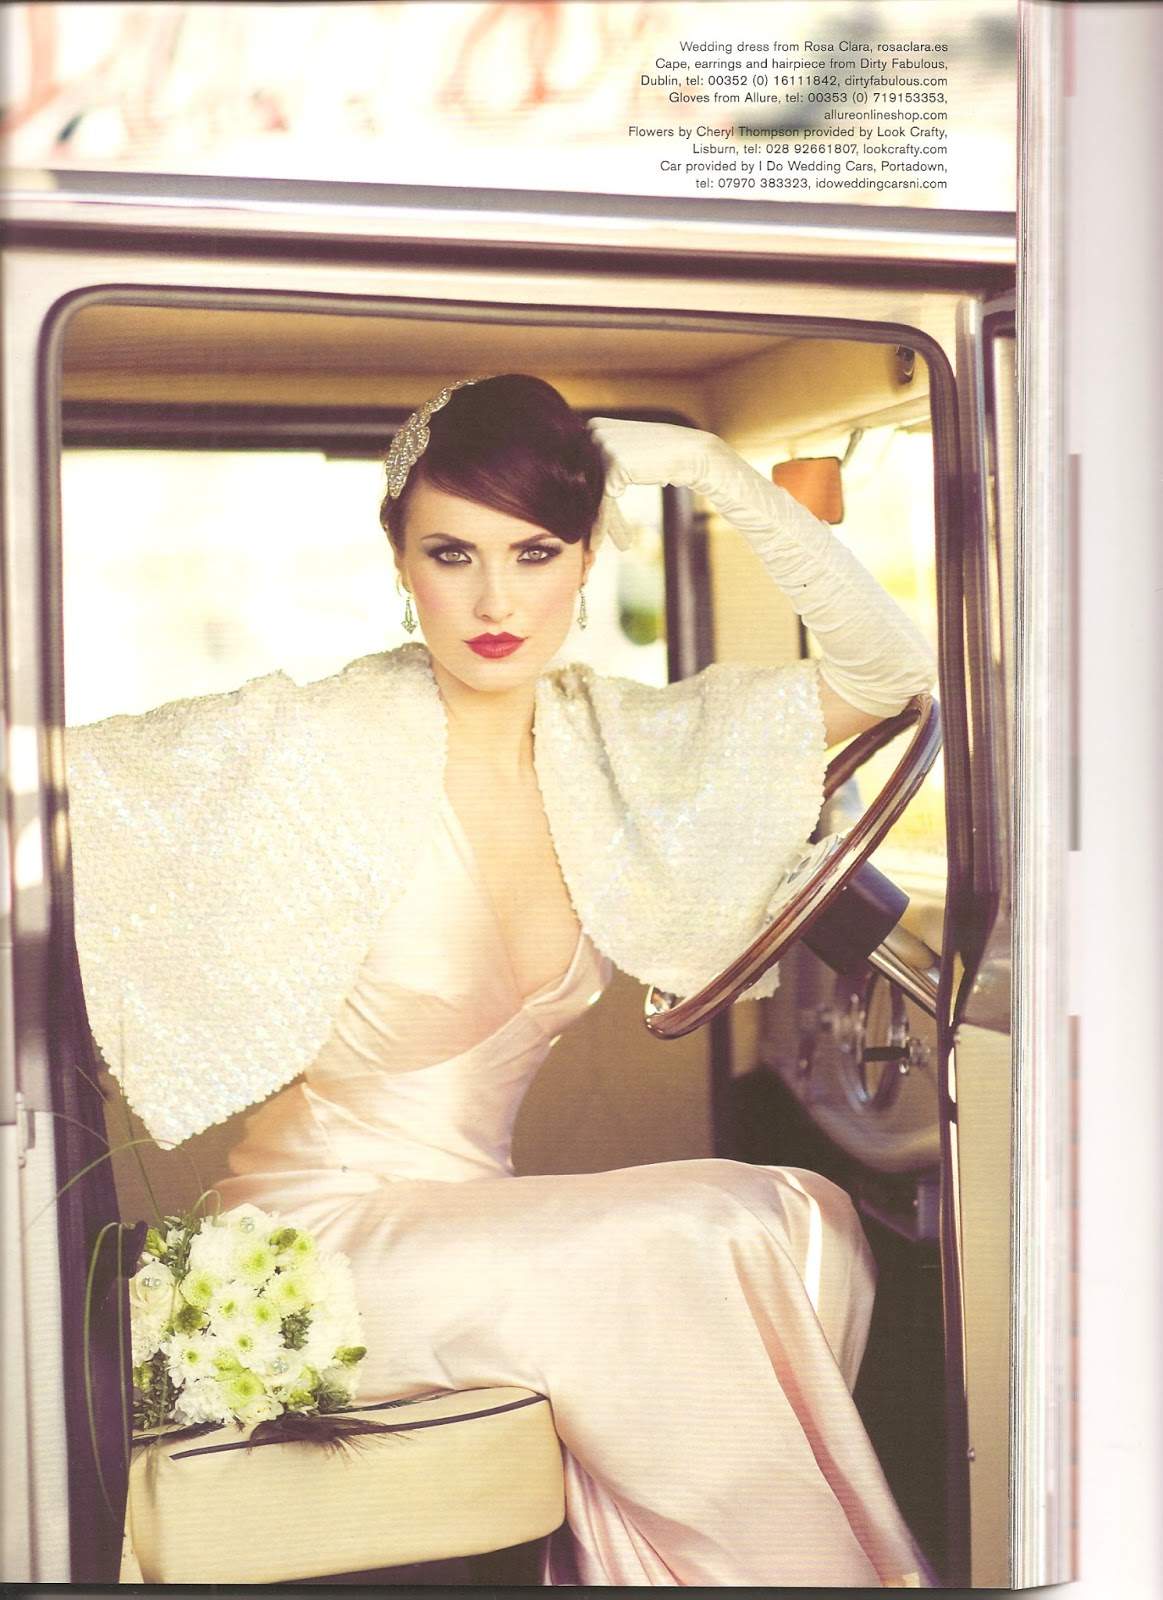 Be Bespoke Bridal Headpieces Ireland - Bespoke rhinestone headpiece and 1930s sequin cape by dirty fabulous